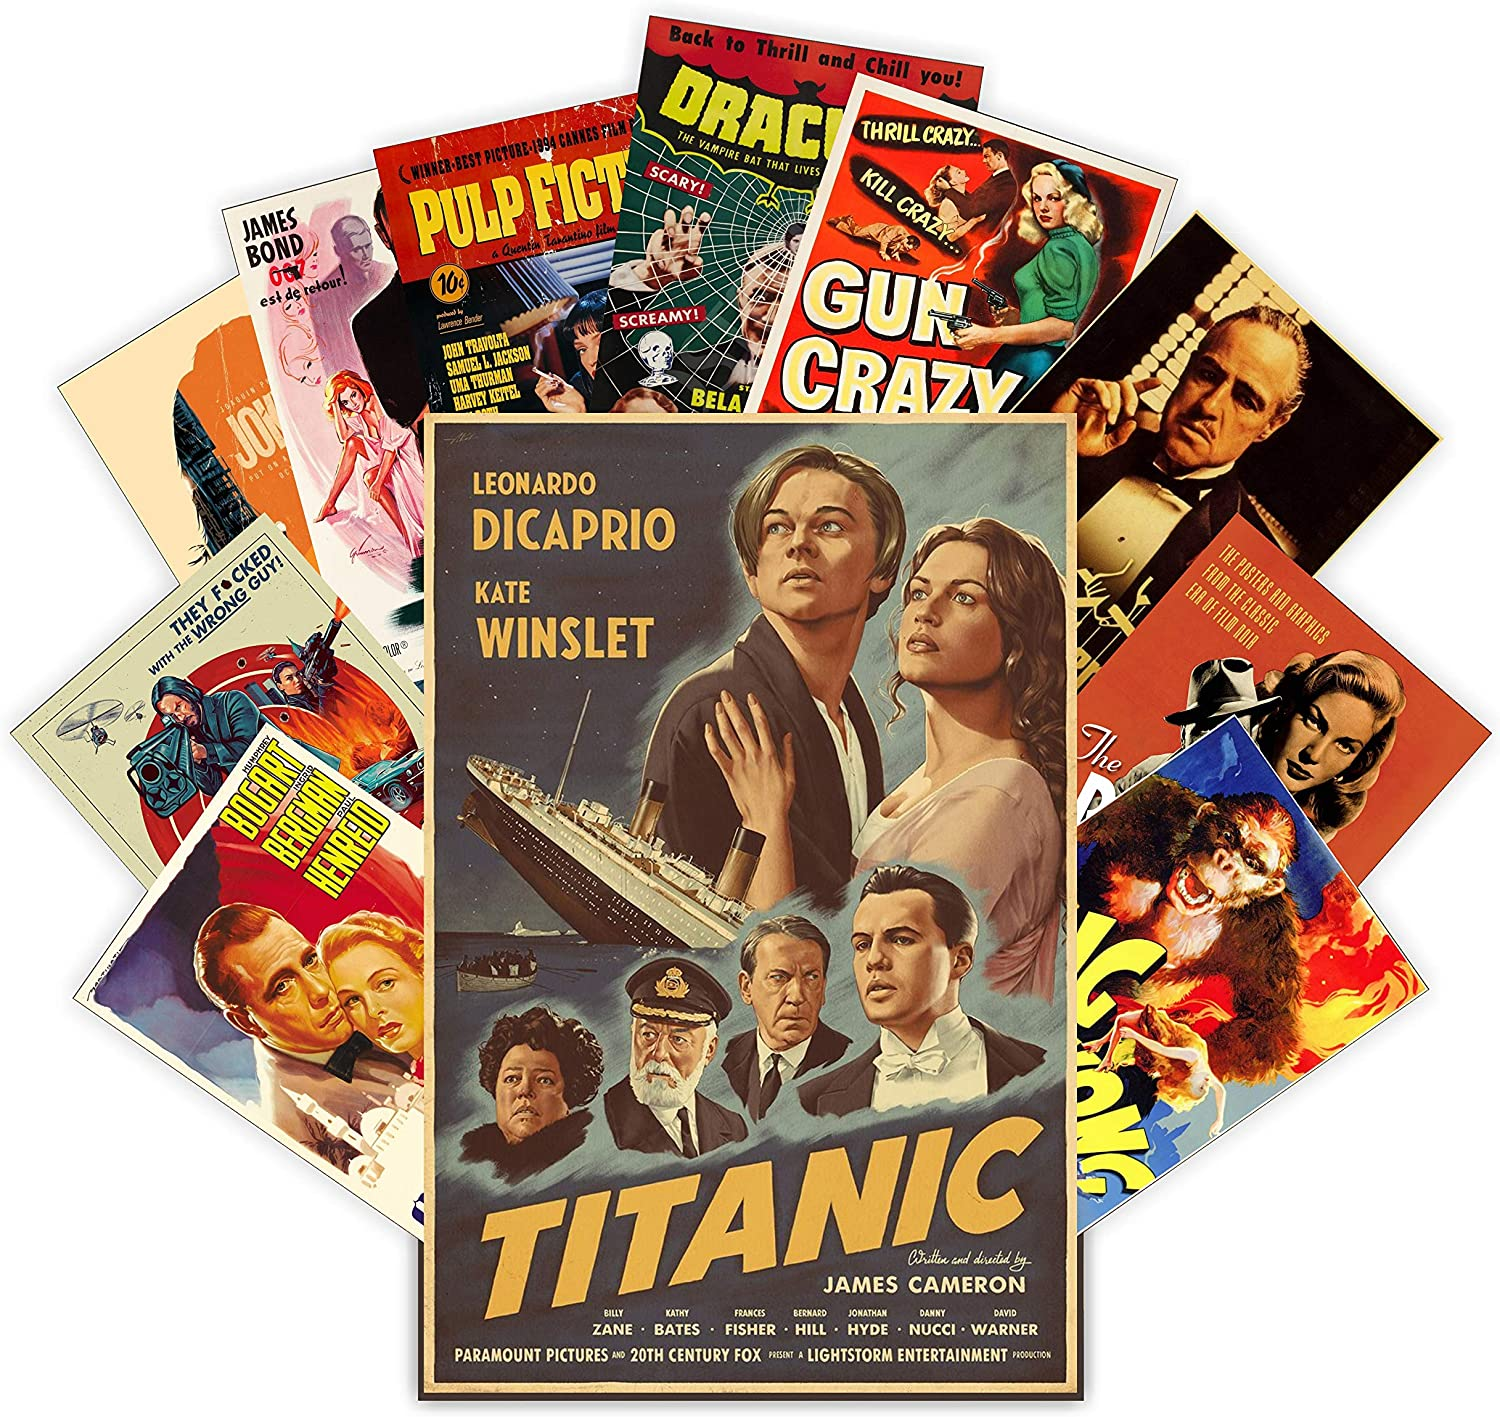 HK Studio Vintage Posters of Classic Movie | Self-Adhesive, Vinyl Decal, Indie Posters for Room Aesthetic 90s | Indie Room Decor Wall Collage Kit | Old-Fashioned, Retro Movie Poster 7.8